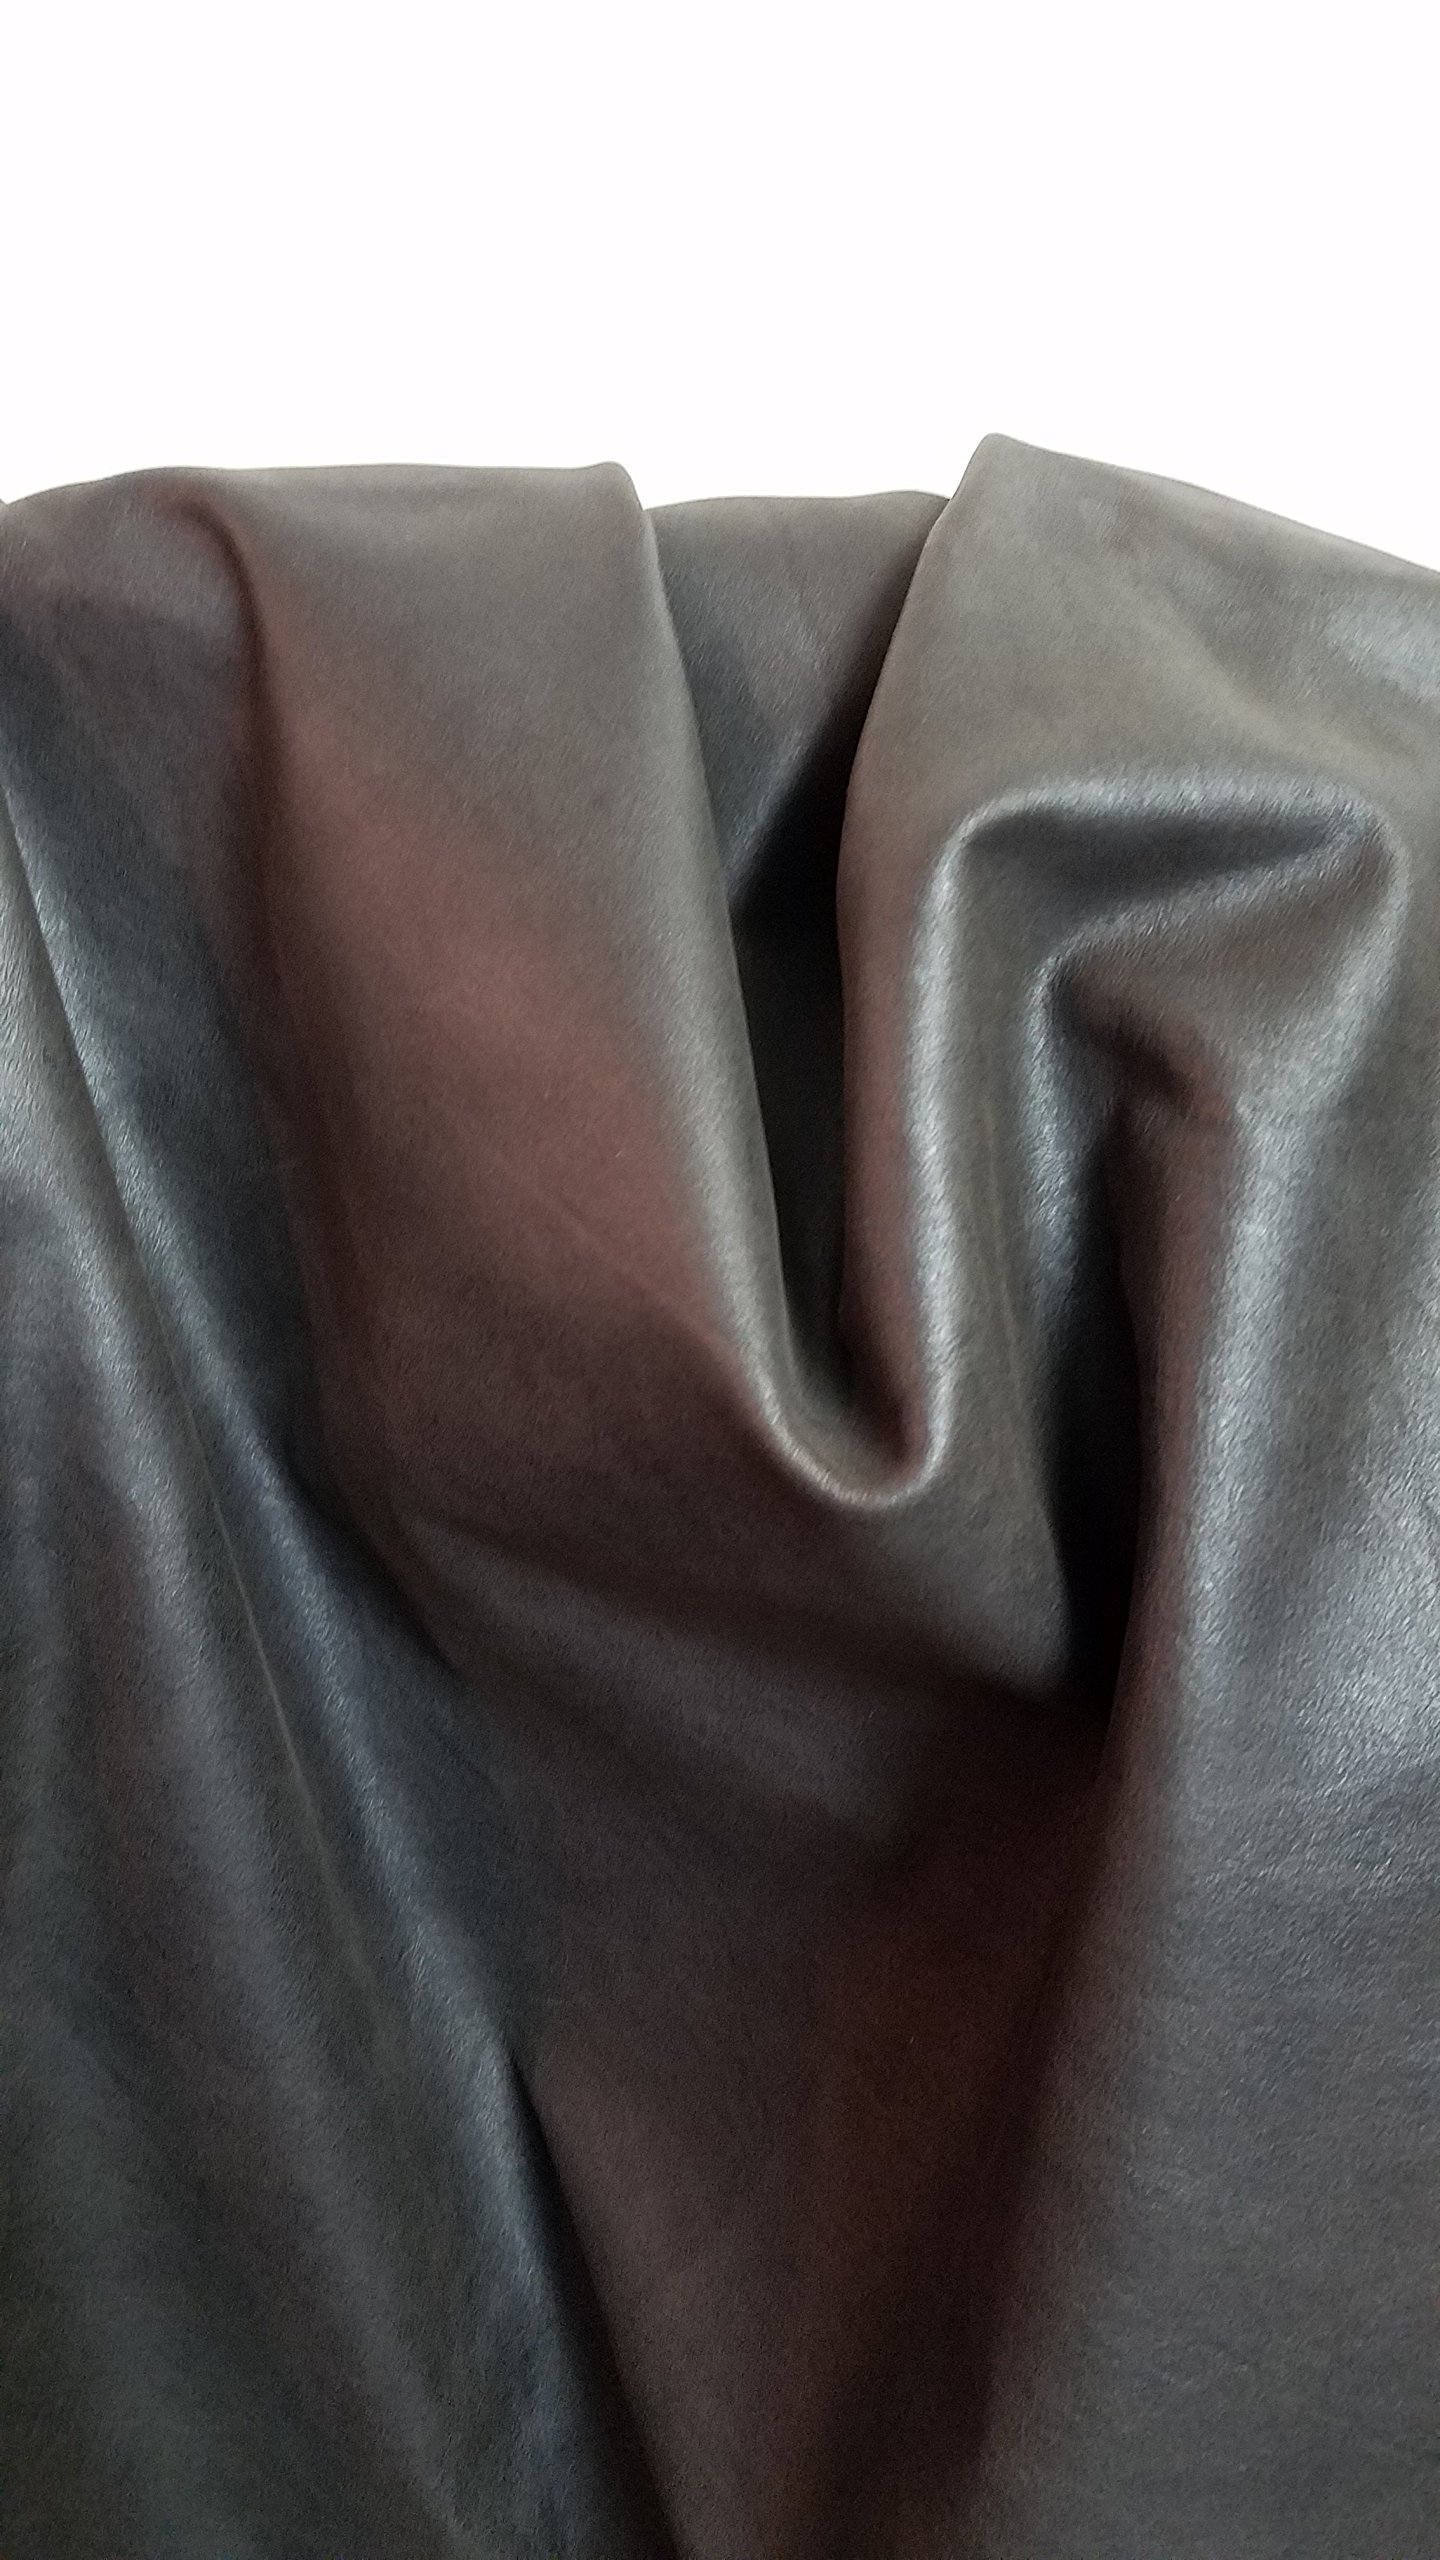 DARK BROWN CRAZY HORSE AVIATOR WAXY COW HIDE LEATHER SKINS 14-18 SQ.FT. 2.0-2.5 OZ. UPHOLSTERY GARMENT BOOKBINDING CHAP NAT Leathers (Brown) (14-18 sf)